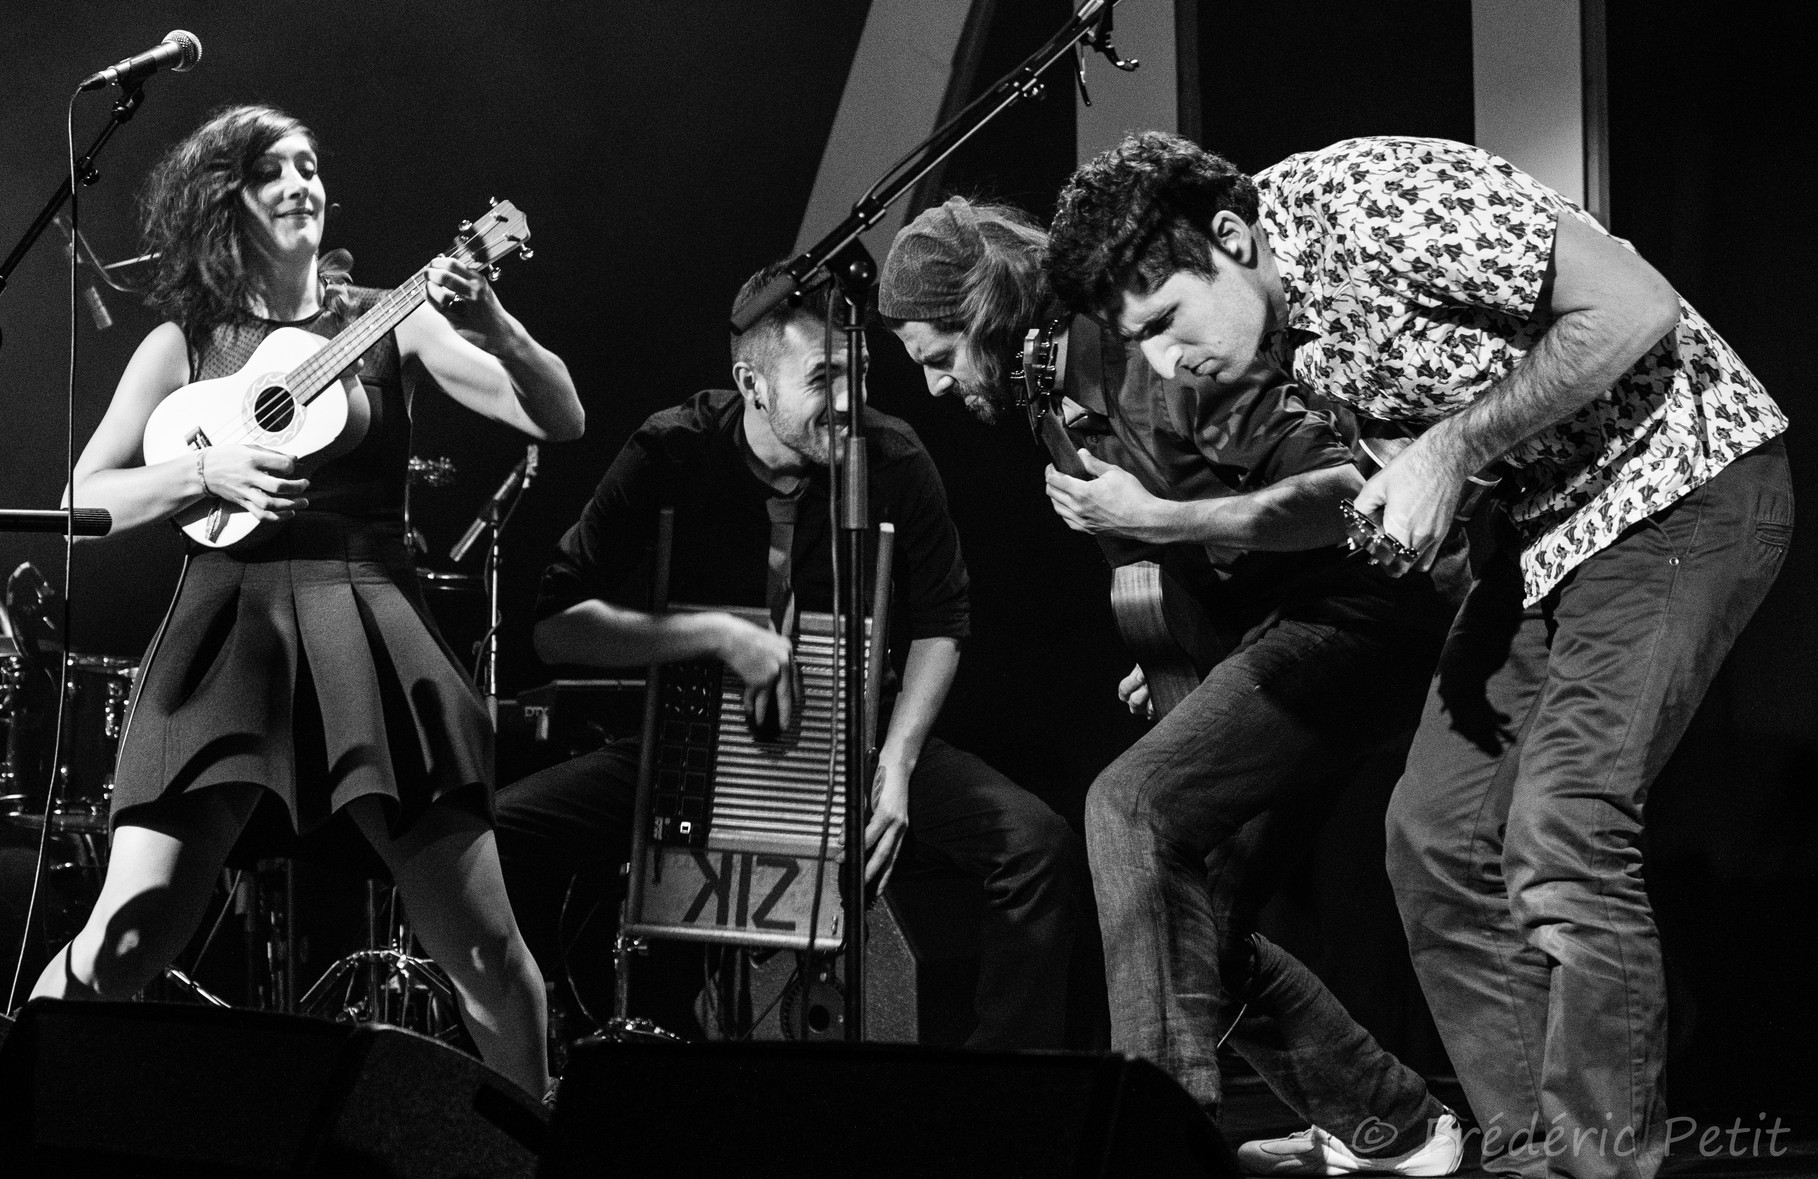 26 septembre 2014 - KIZ @ Pan Piper